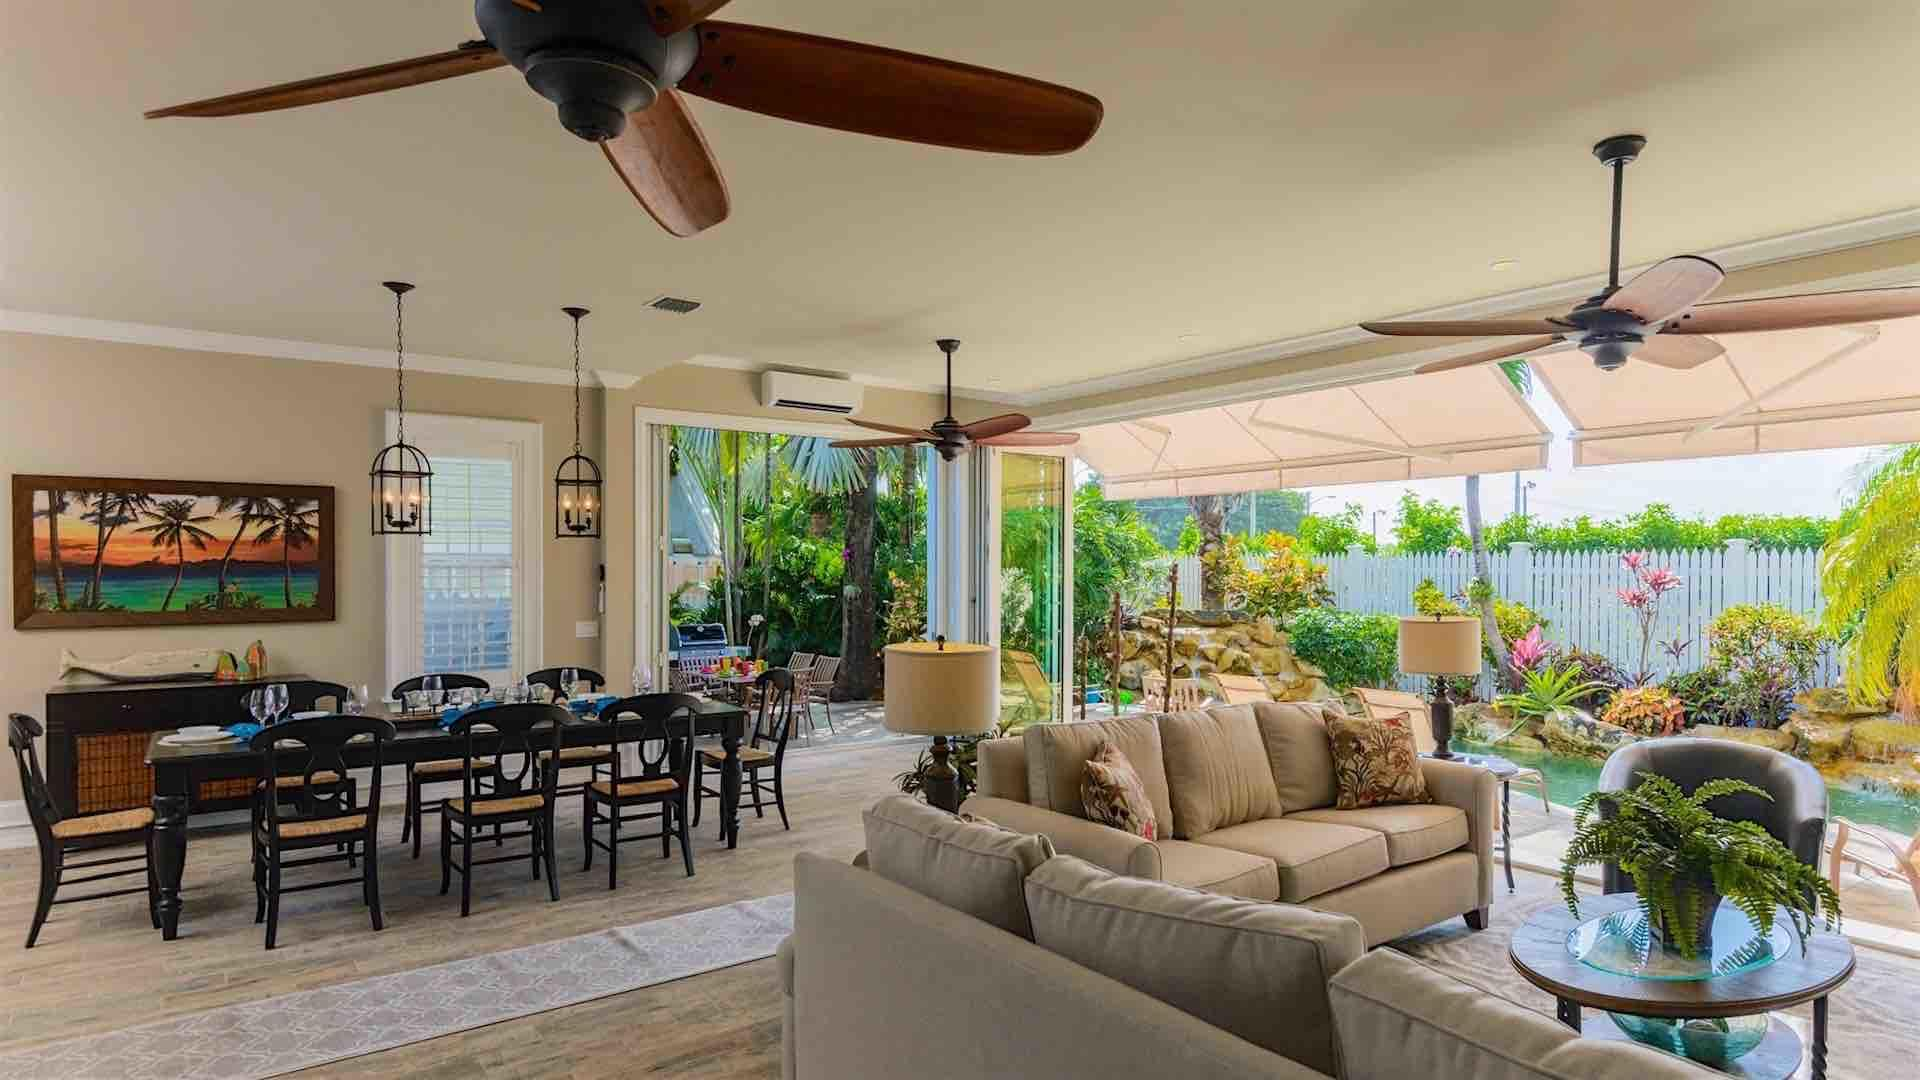 The open plan design is striking, and perfect for entertaining in the tropics...